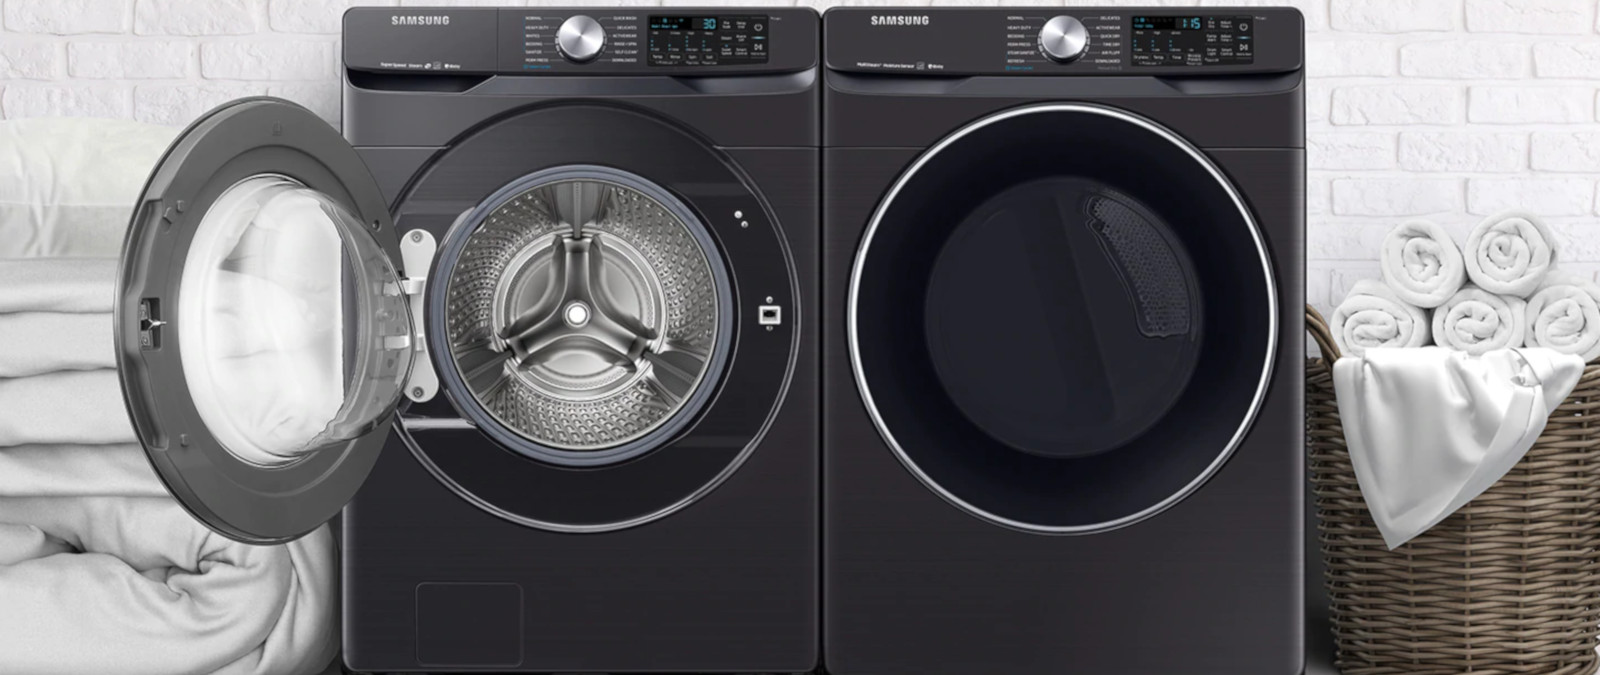 Samsung Front Load Washer Samsung 4 5 Cu Ft Smart Front Load Washer W Super Speed Wf45r6300av